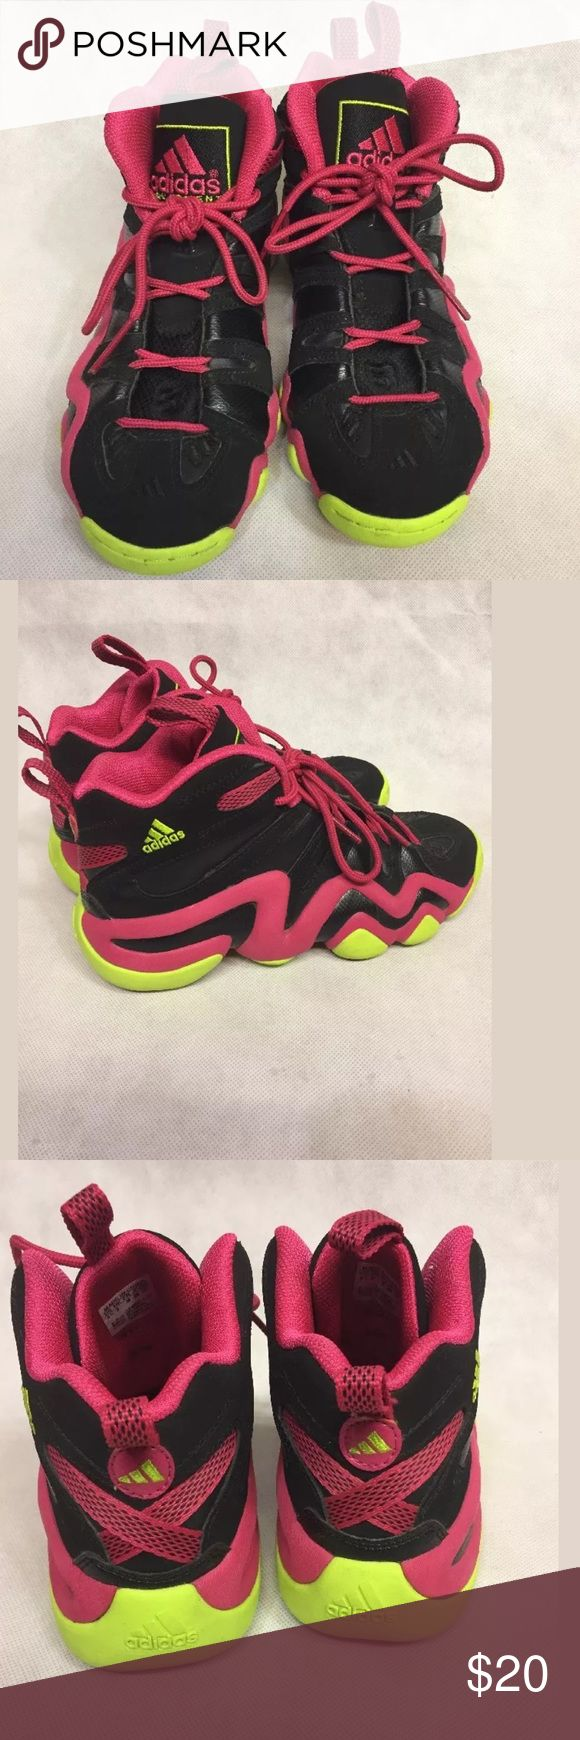 👟👟ADIDAS CRAZY 8 RETRO KOBE BRYANT Sneakers ADIDAS CRAZY 8 RETRO KOBE BRYANT BASKETBALL SHOES MOTHER'S DAY SIZE US 5 1/2 Neon yellow and hot pink Pre owned good Condition Without box. 🚫trades Adidas Shoes Sneakers